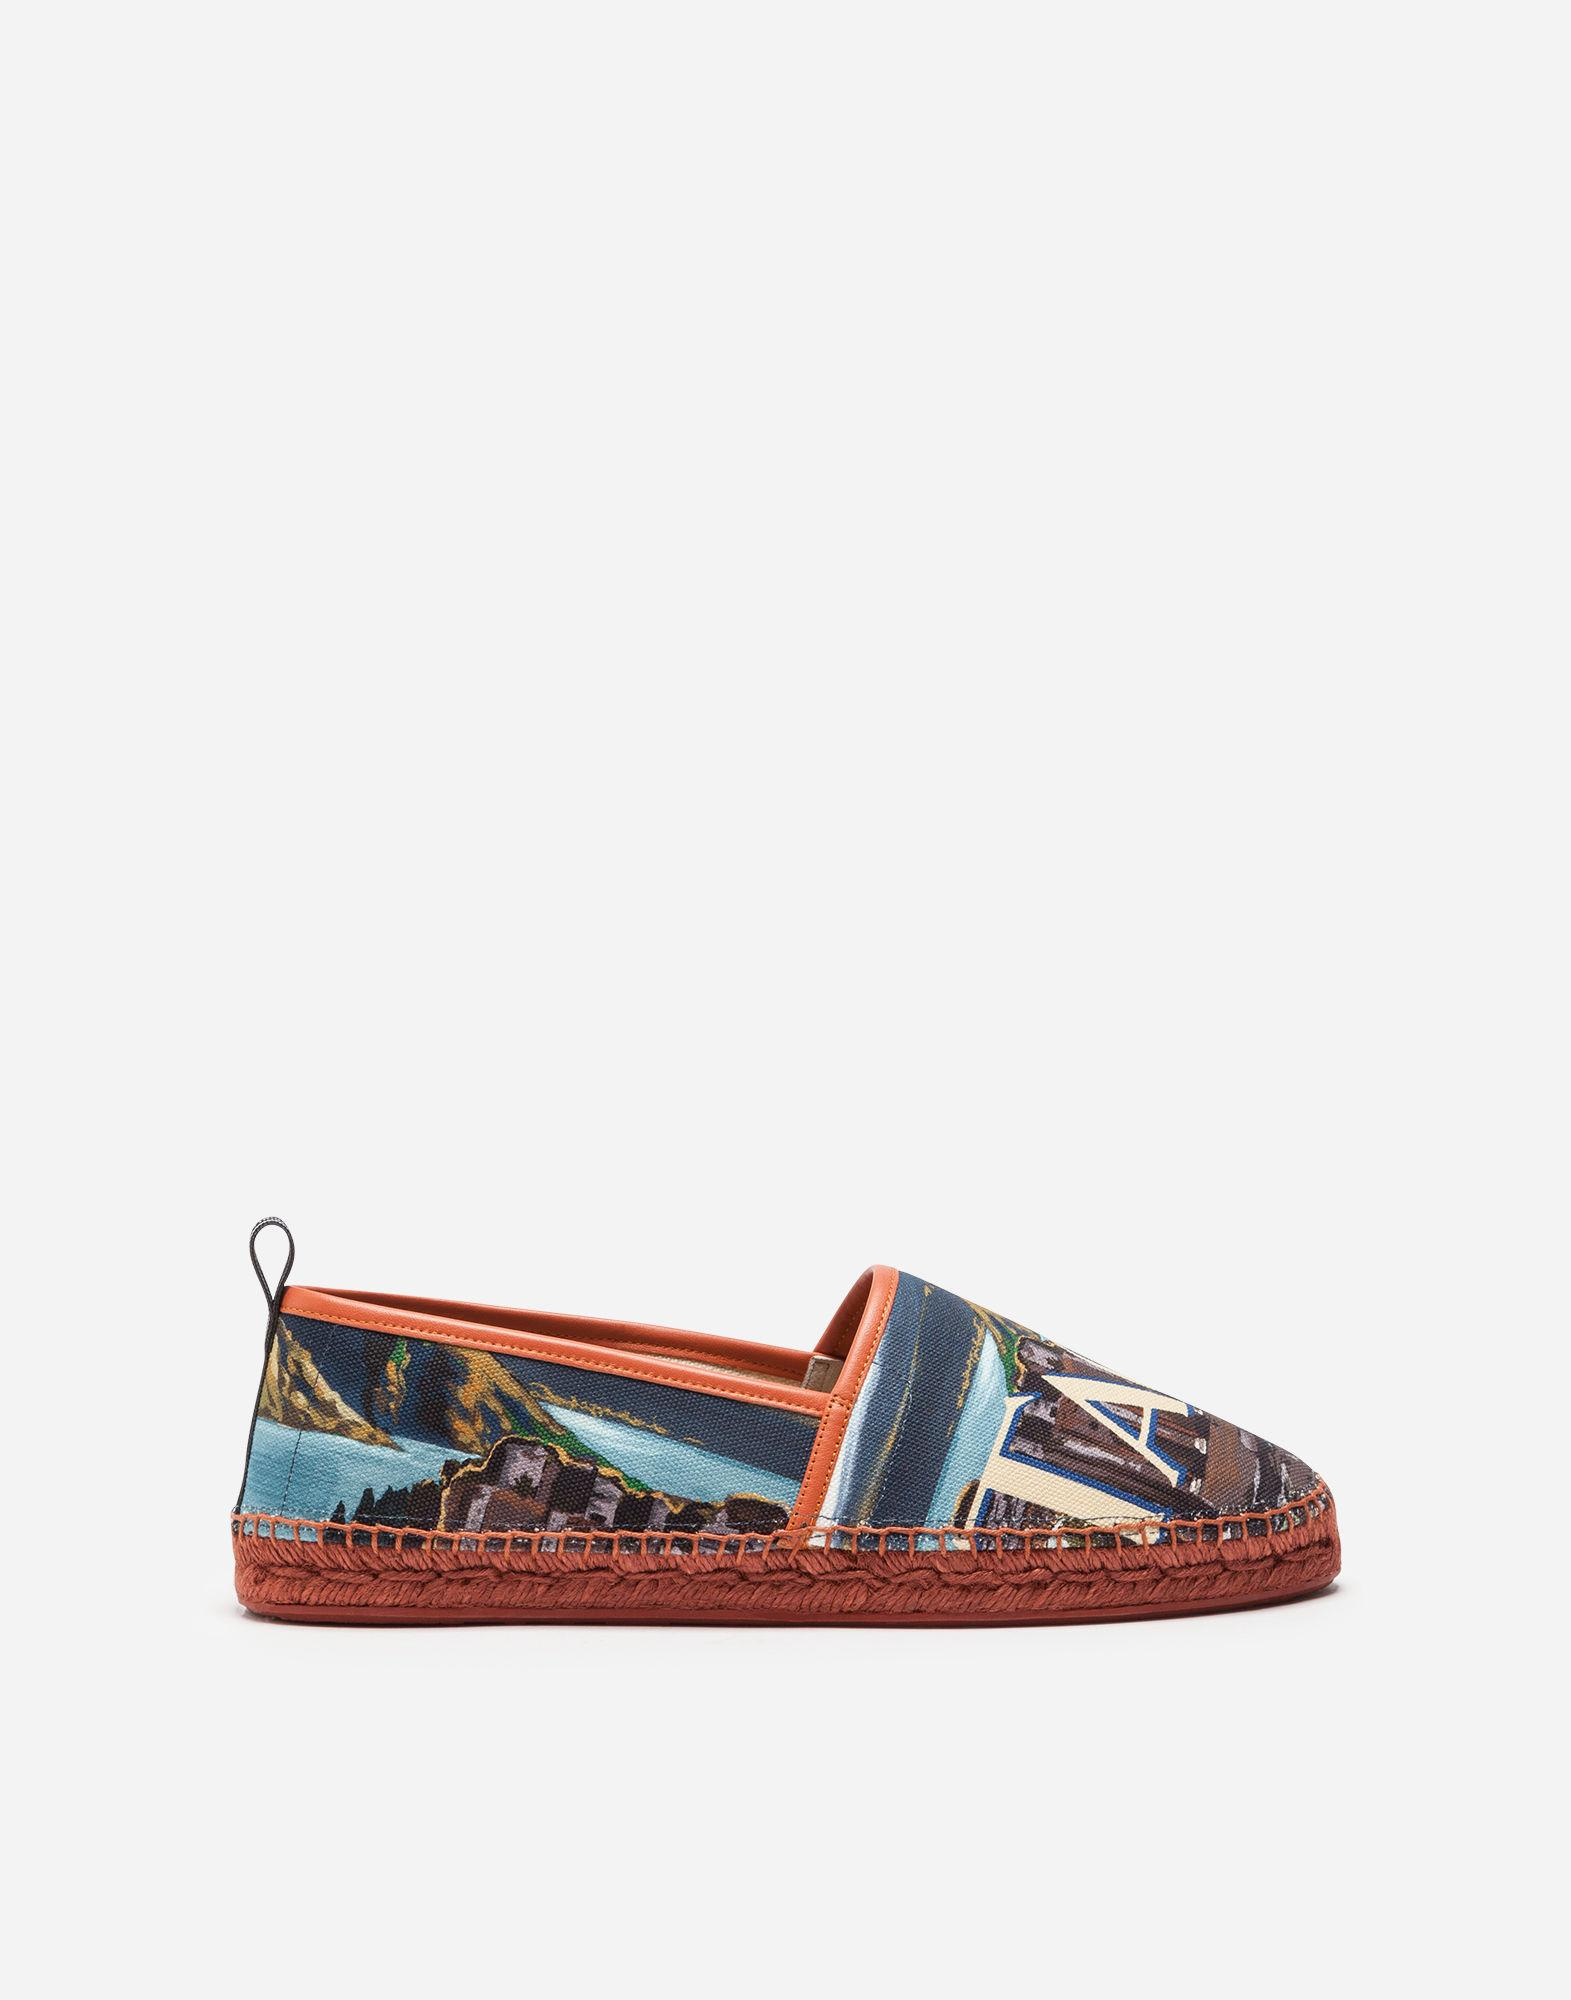 f4207a3ad Dolce & Gabbana Canvas And Calfskin Espadrilles In Multi-Colored ...